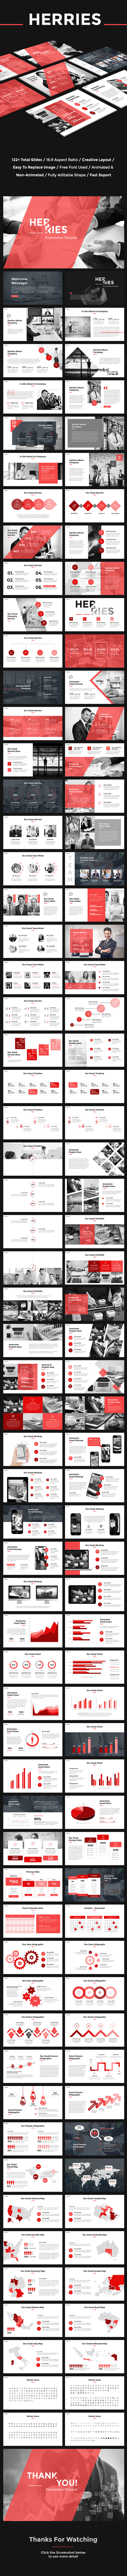 Herries Clean Business Pitch Deck PowerPoint - PowerPoint Templates Presentation Templates